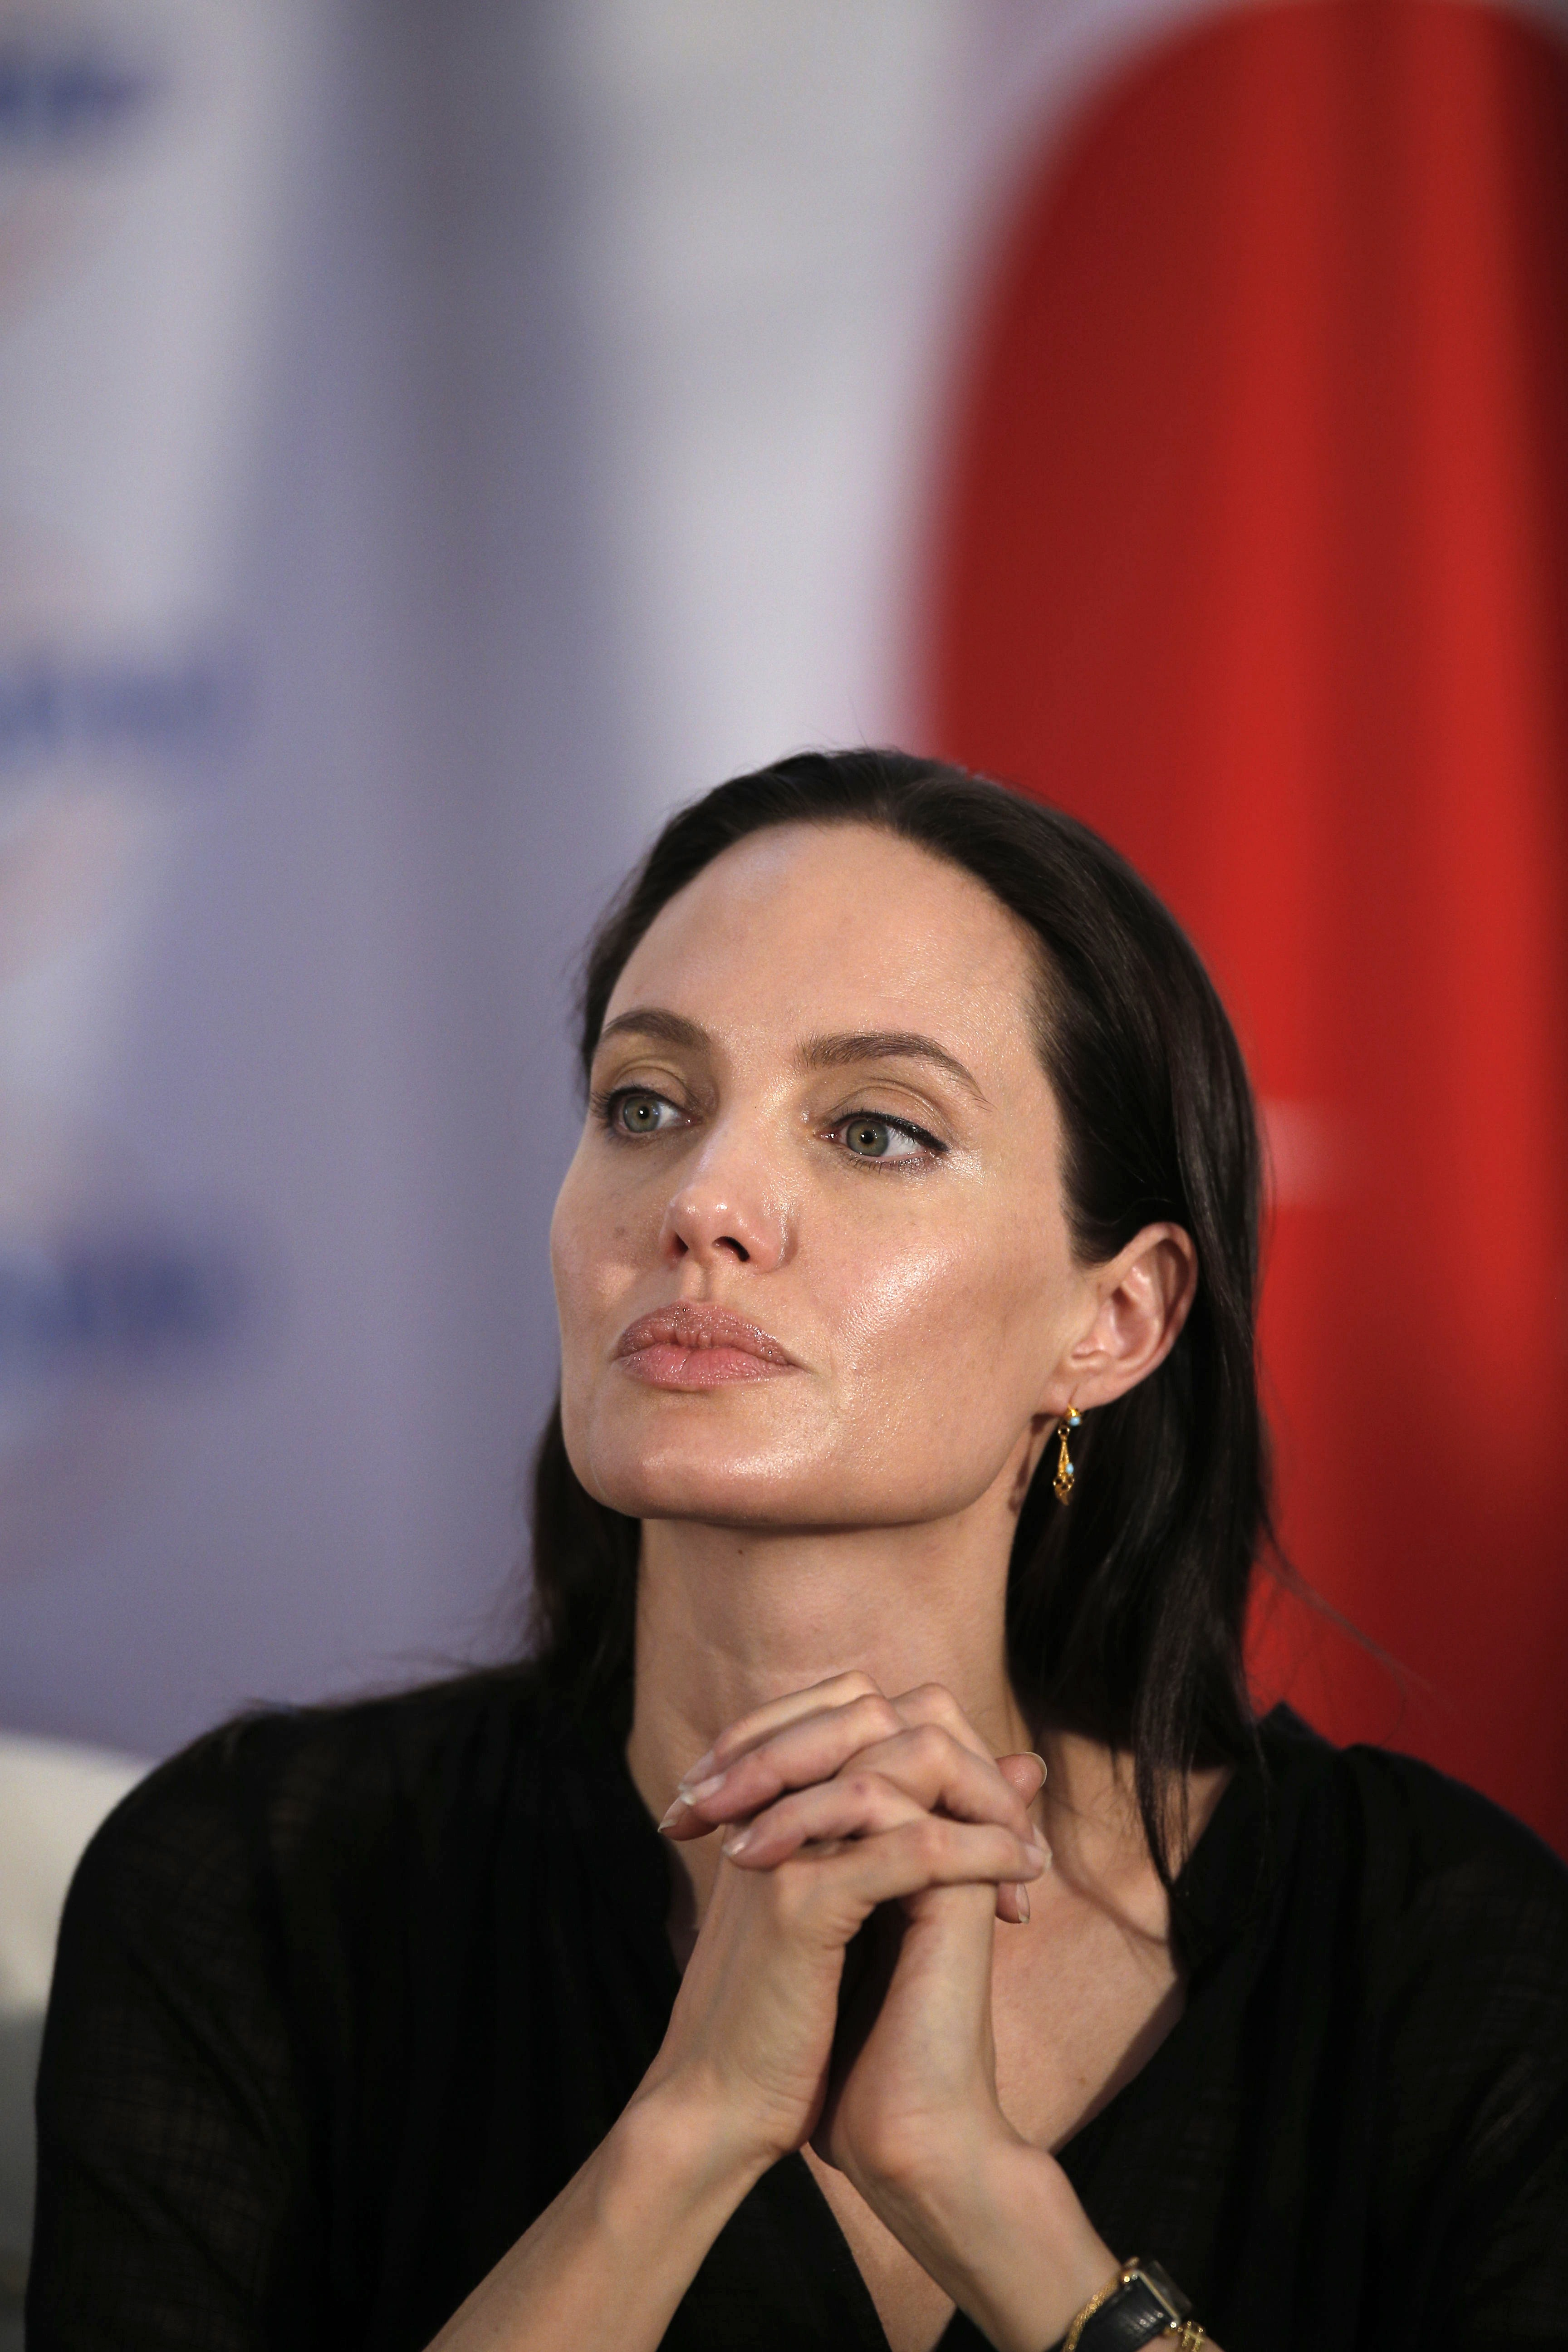 Angelina Jolie at a press conference in Mardin, Turkey on June 20, 2015.